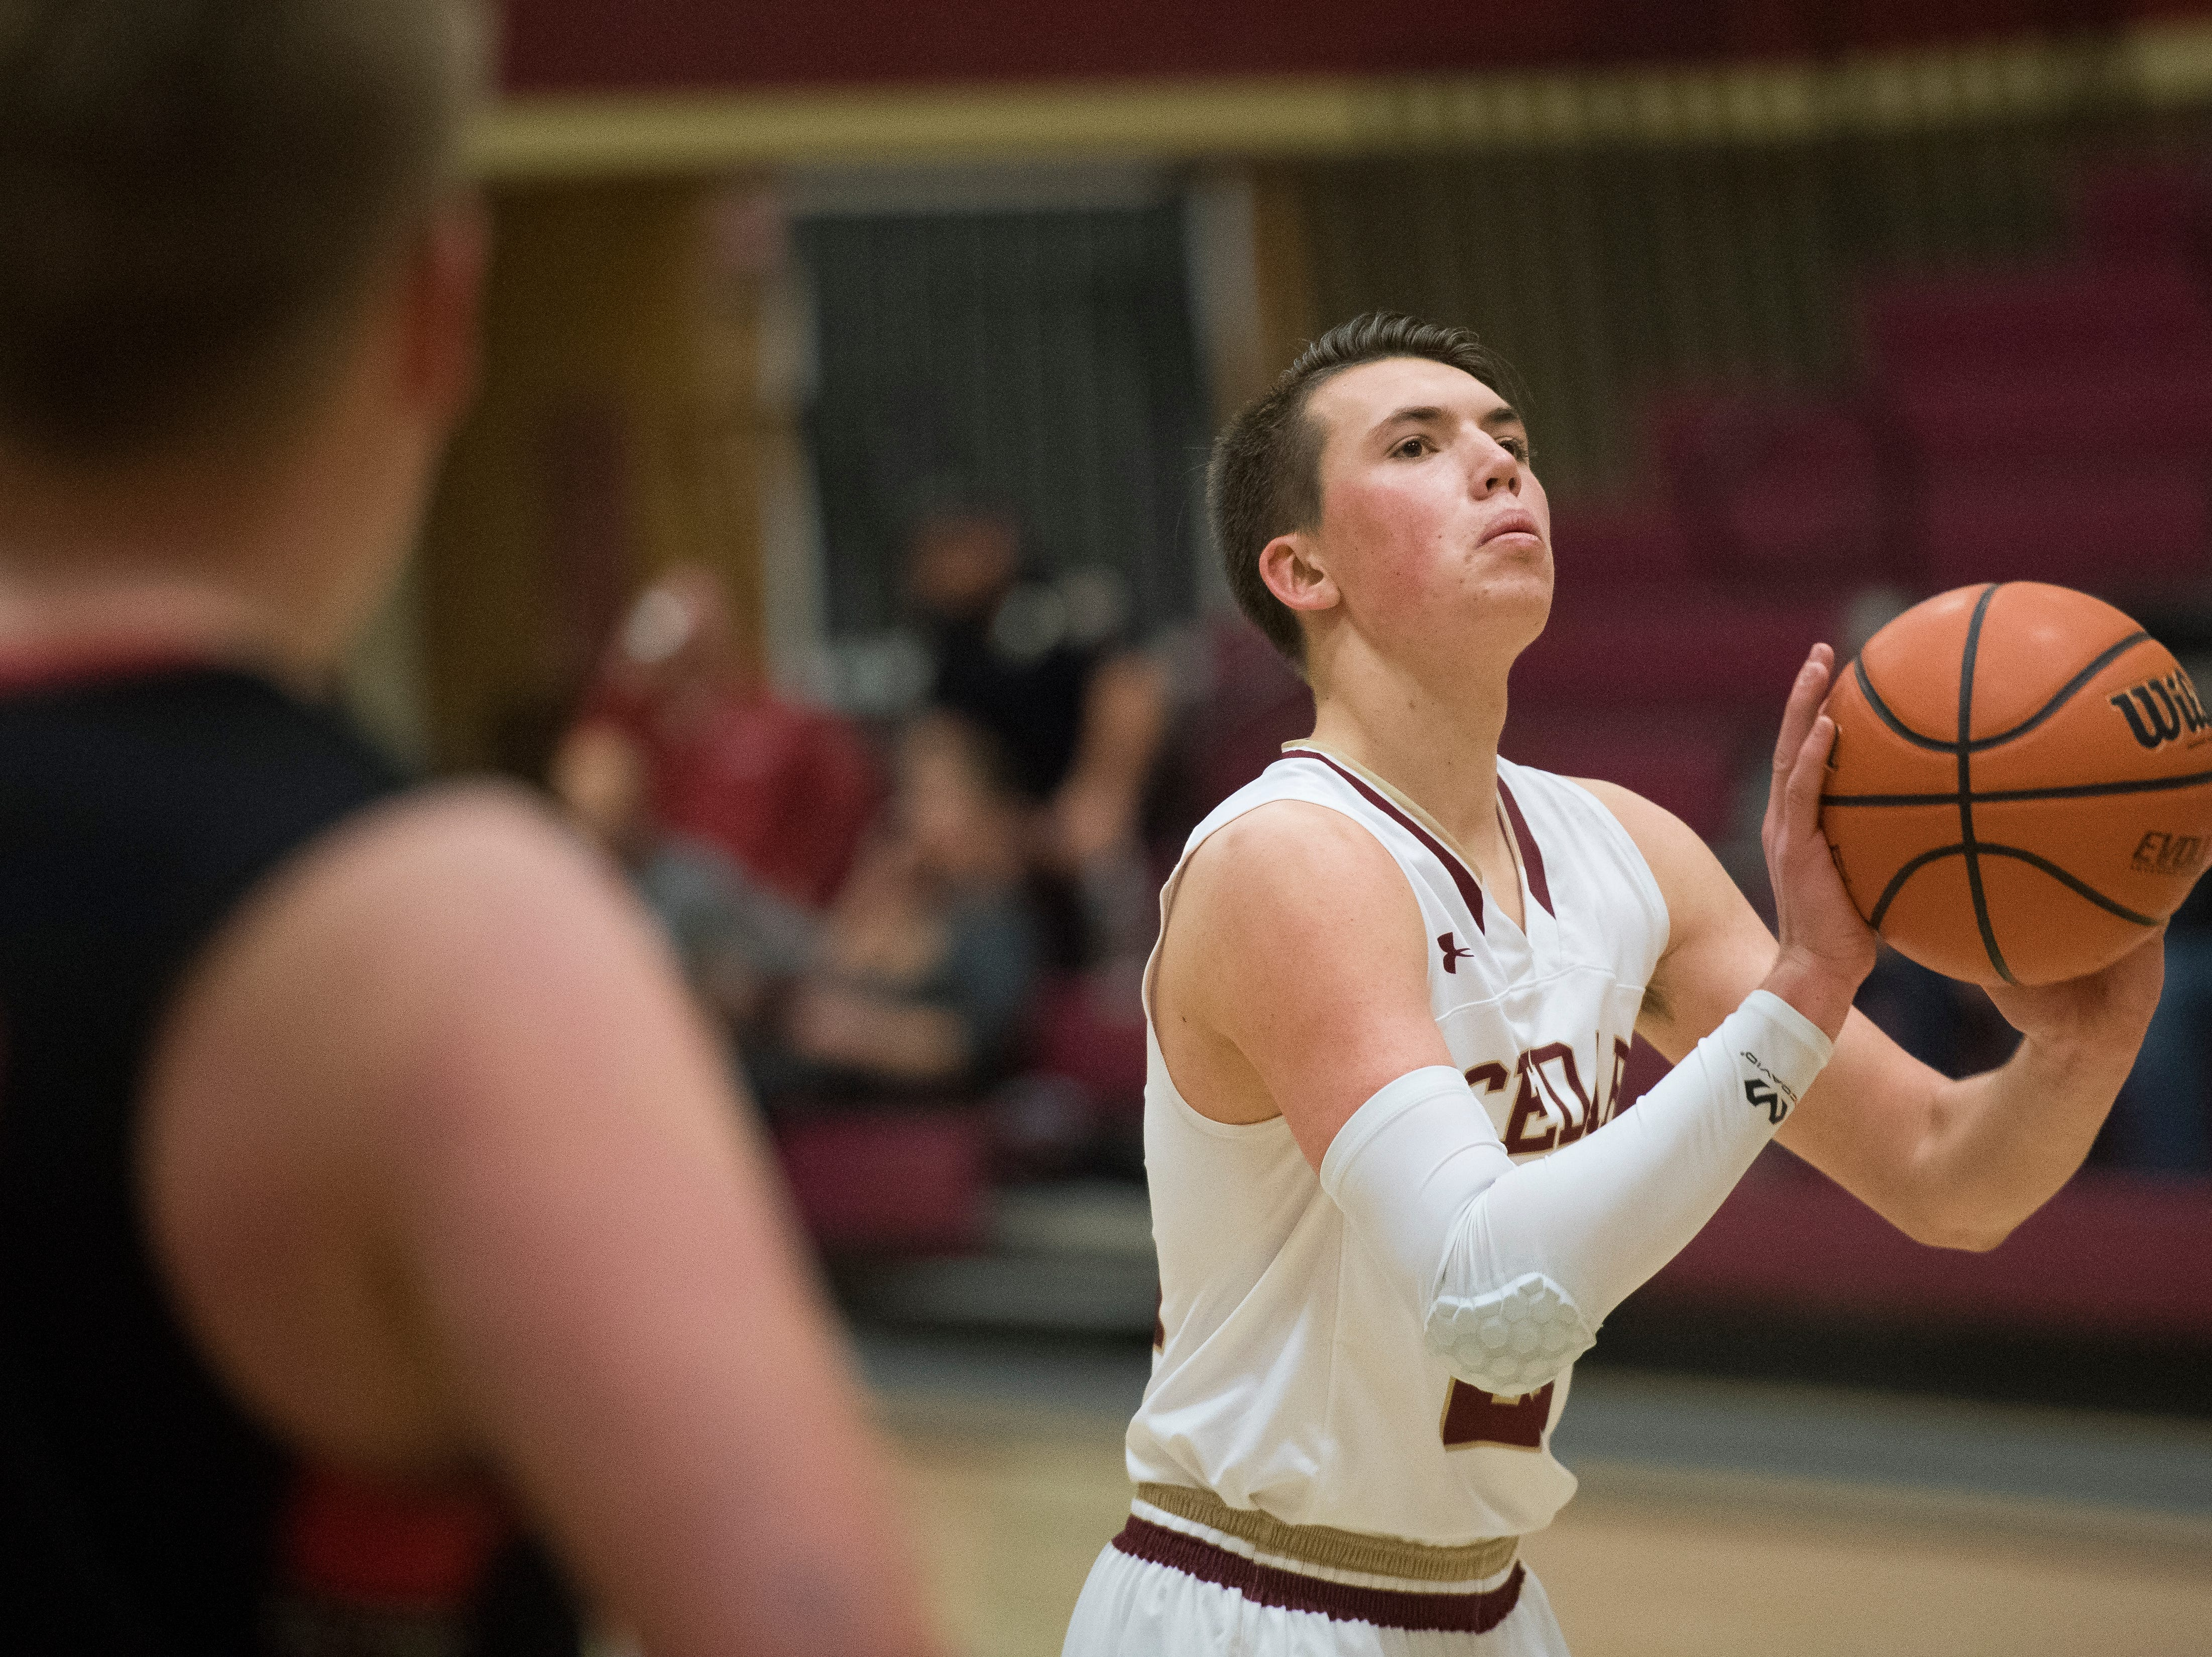 Cedar High School senior Tanner Eyre (21) makes a free-throw against Lincoln County at CHS Wednesday, December 12, 2018. The Redmen won, 80-54.